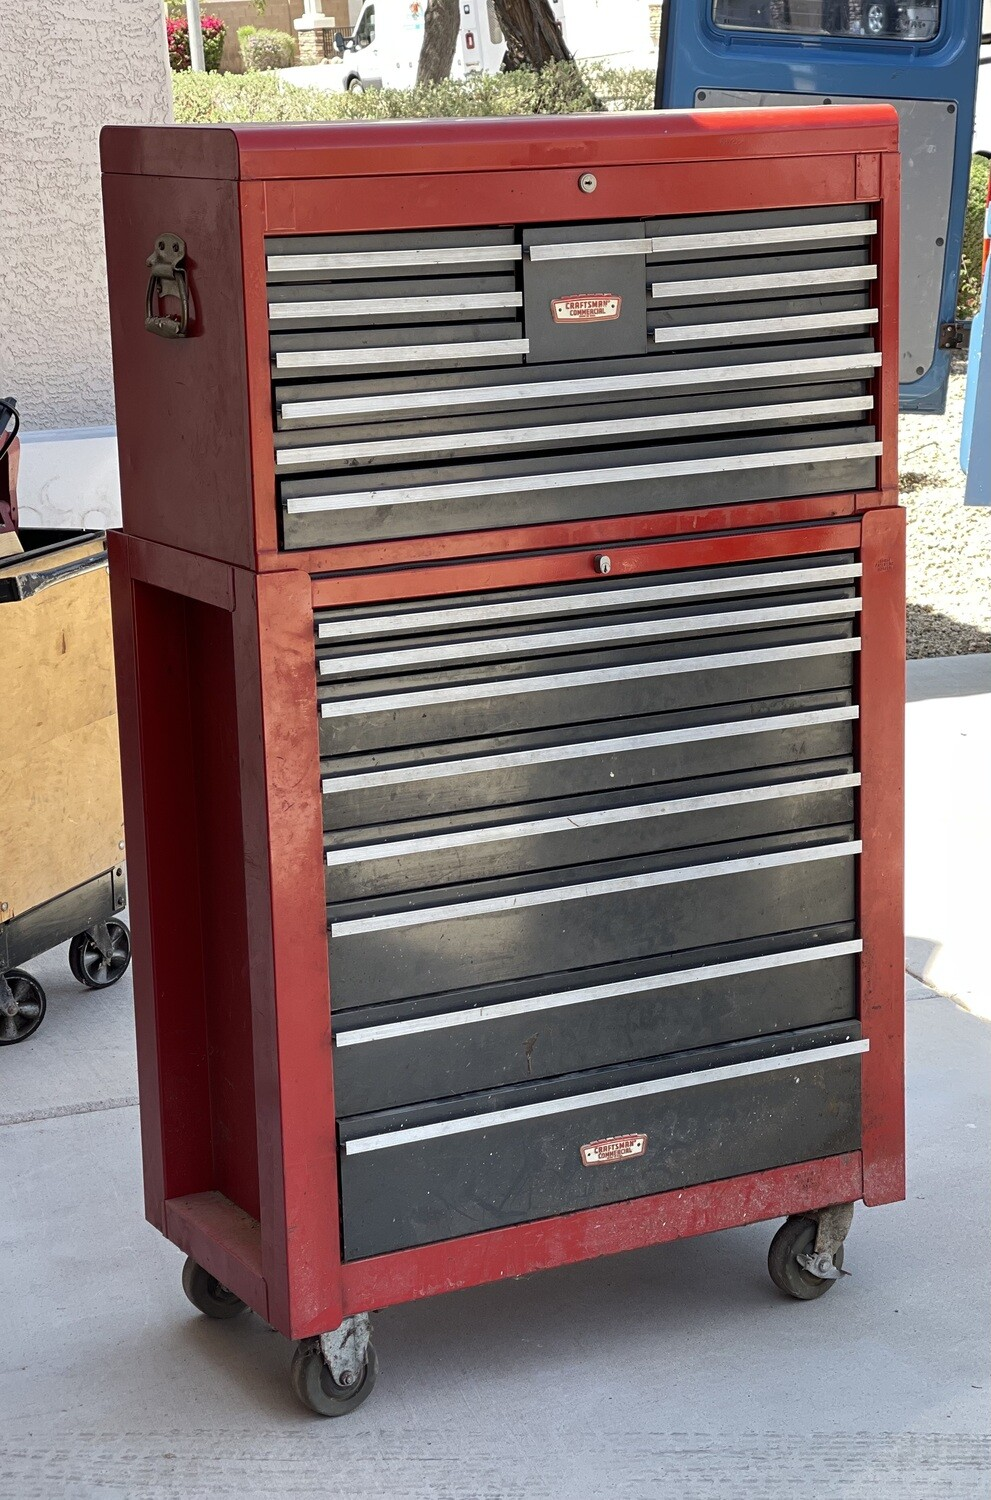 Craftsman Commercial 2-Piece Tool Chest